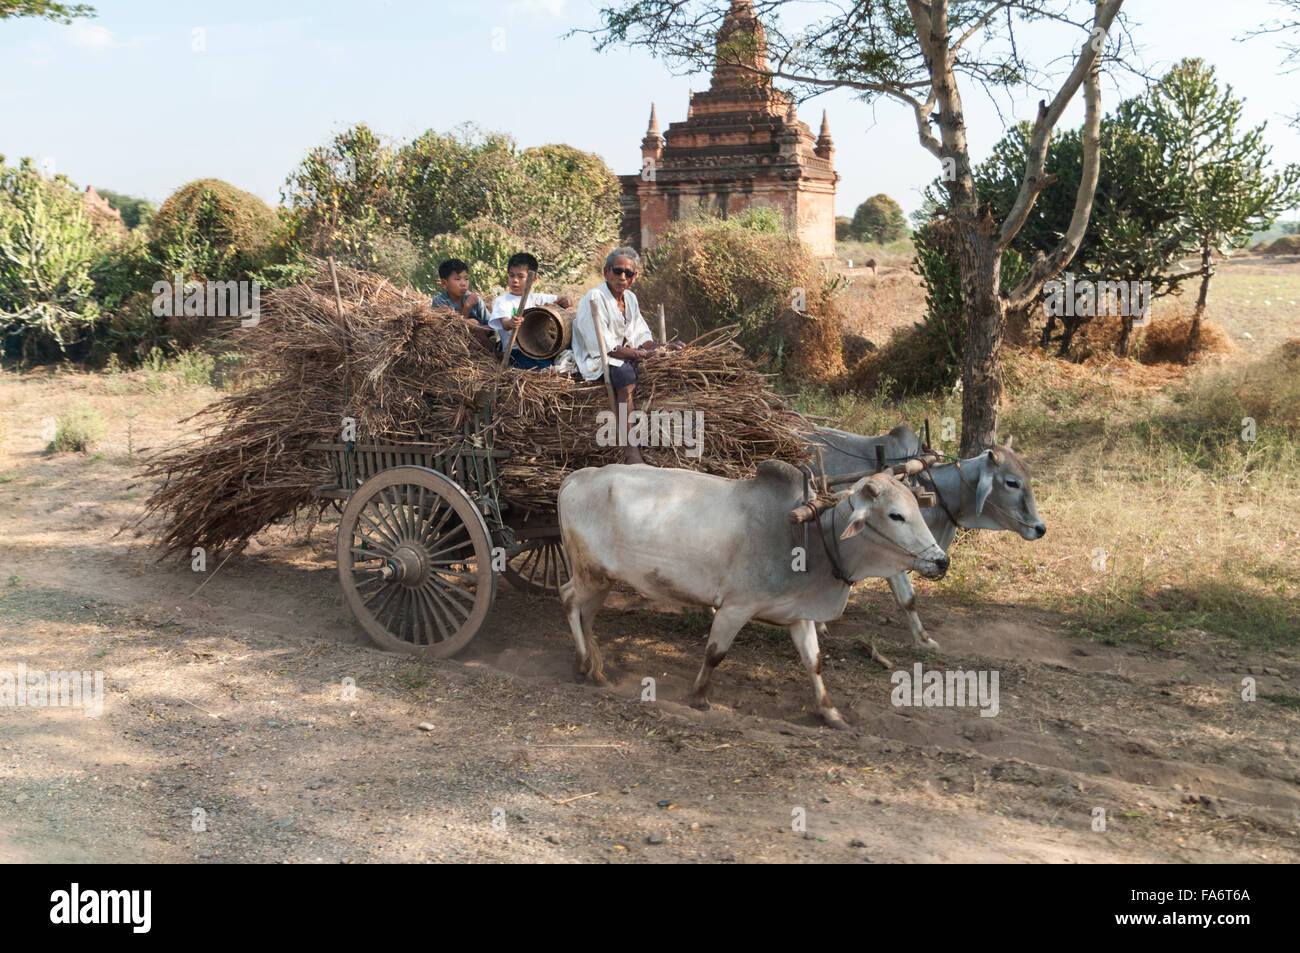 Farmer on an oxcart full of straw drawn by two Zebu oxen in Nyaung-U/Bagan, Mandalay region, Myanmar. - Stock Image